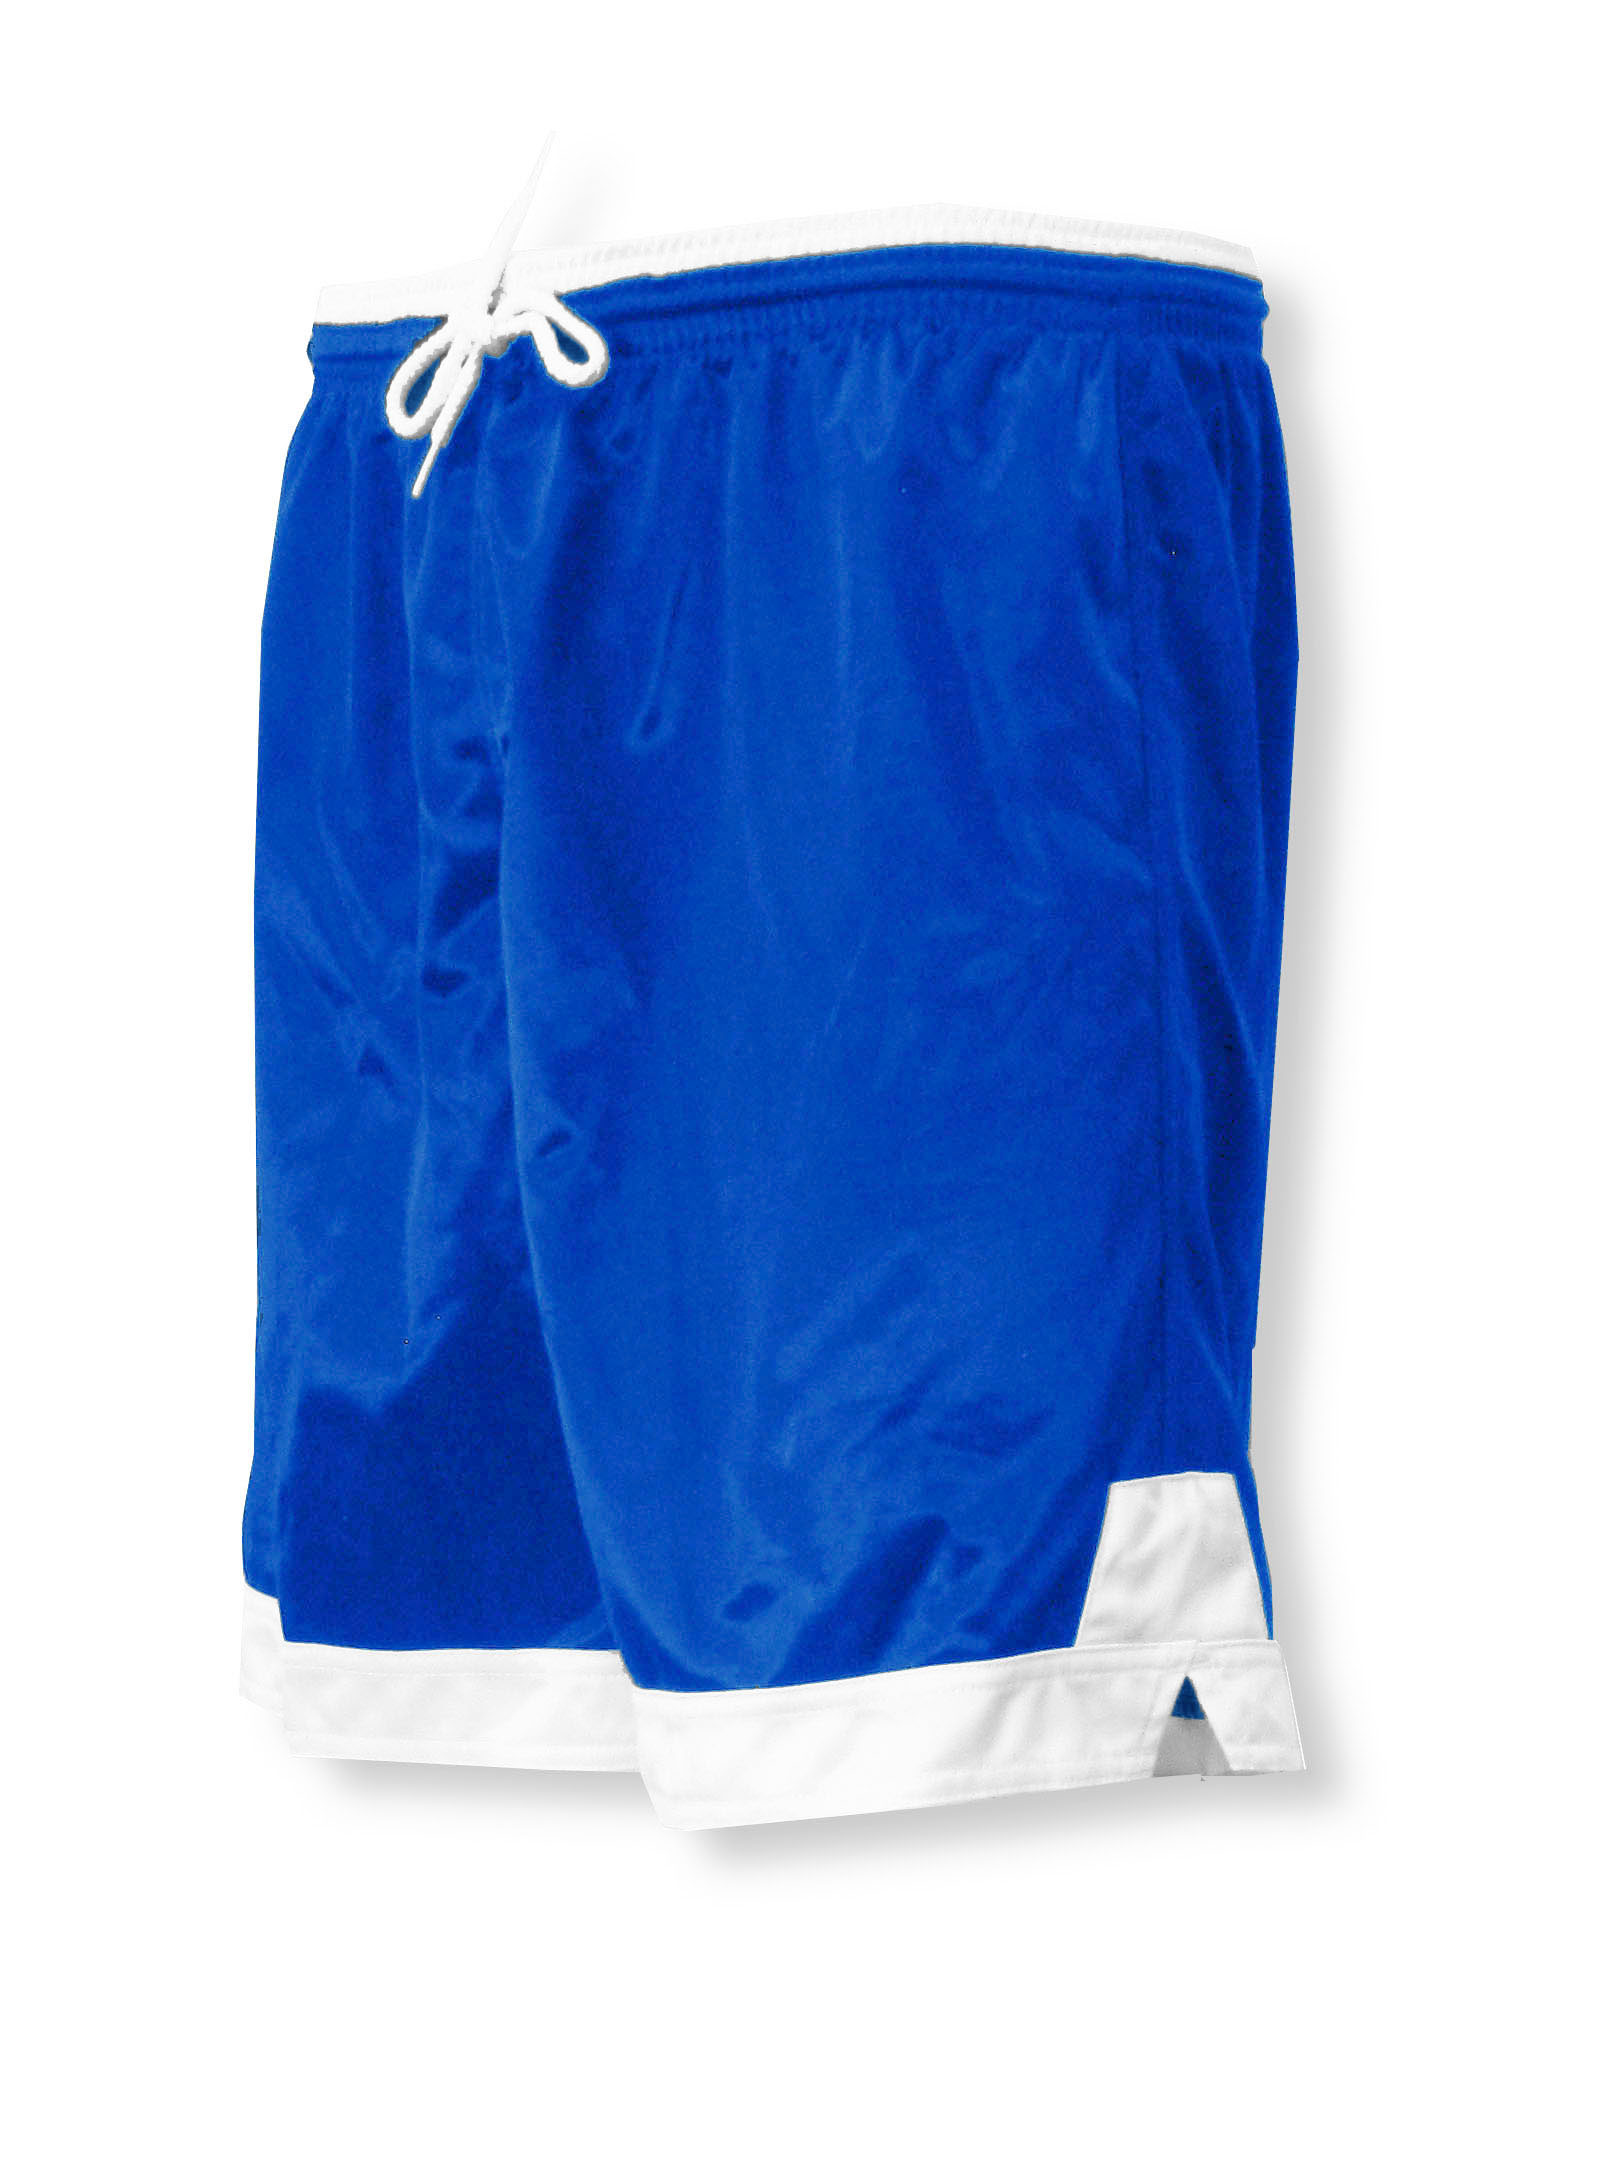 Winchester soccer shorts in royal/white by Code Four Athletics